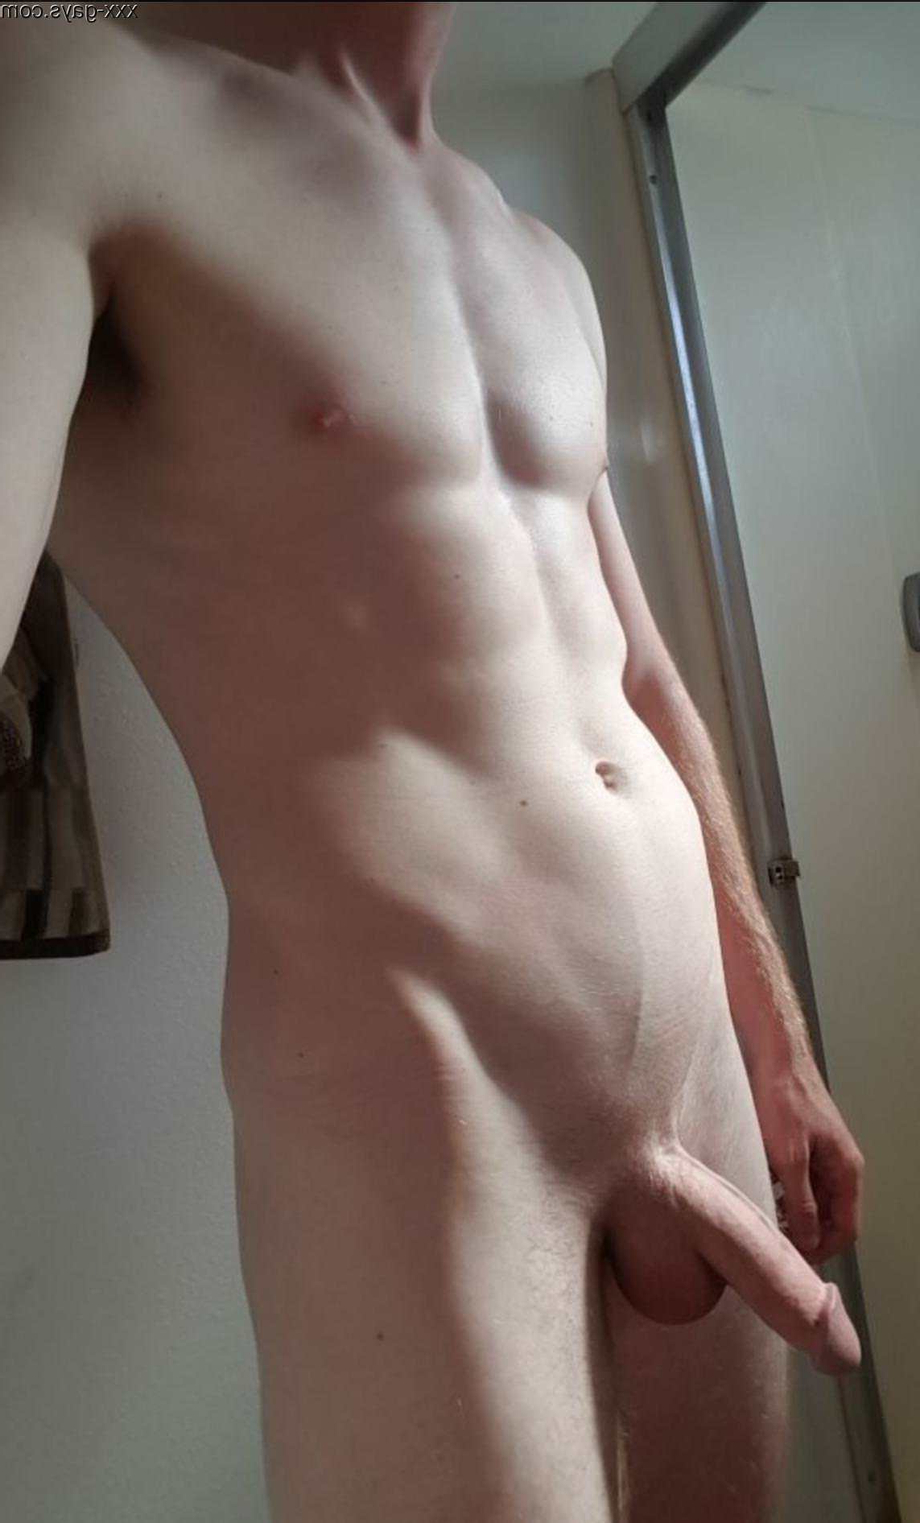 I was really feeling the lighting in my bathroom today | Gaymers  Porn XXX | Hot XXX Gays